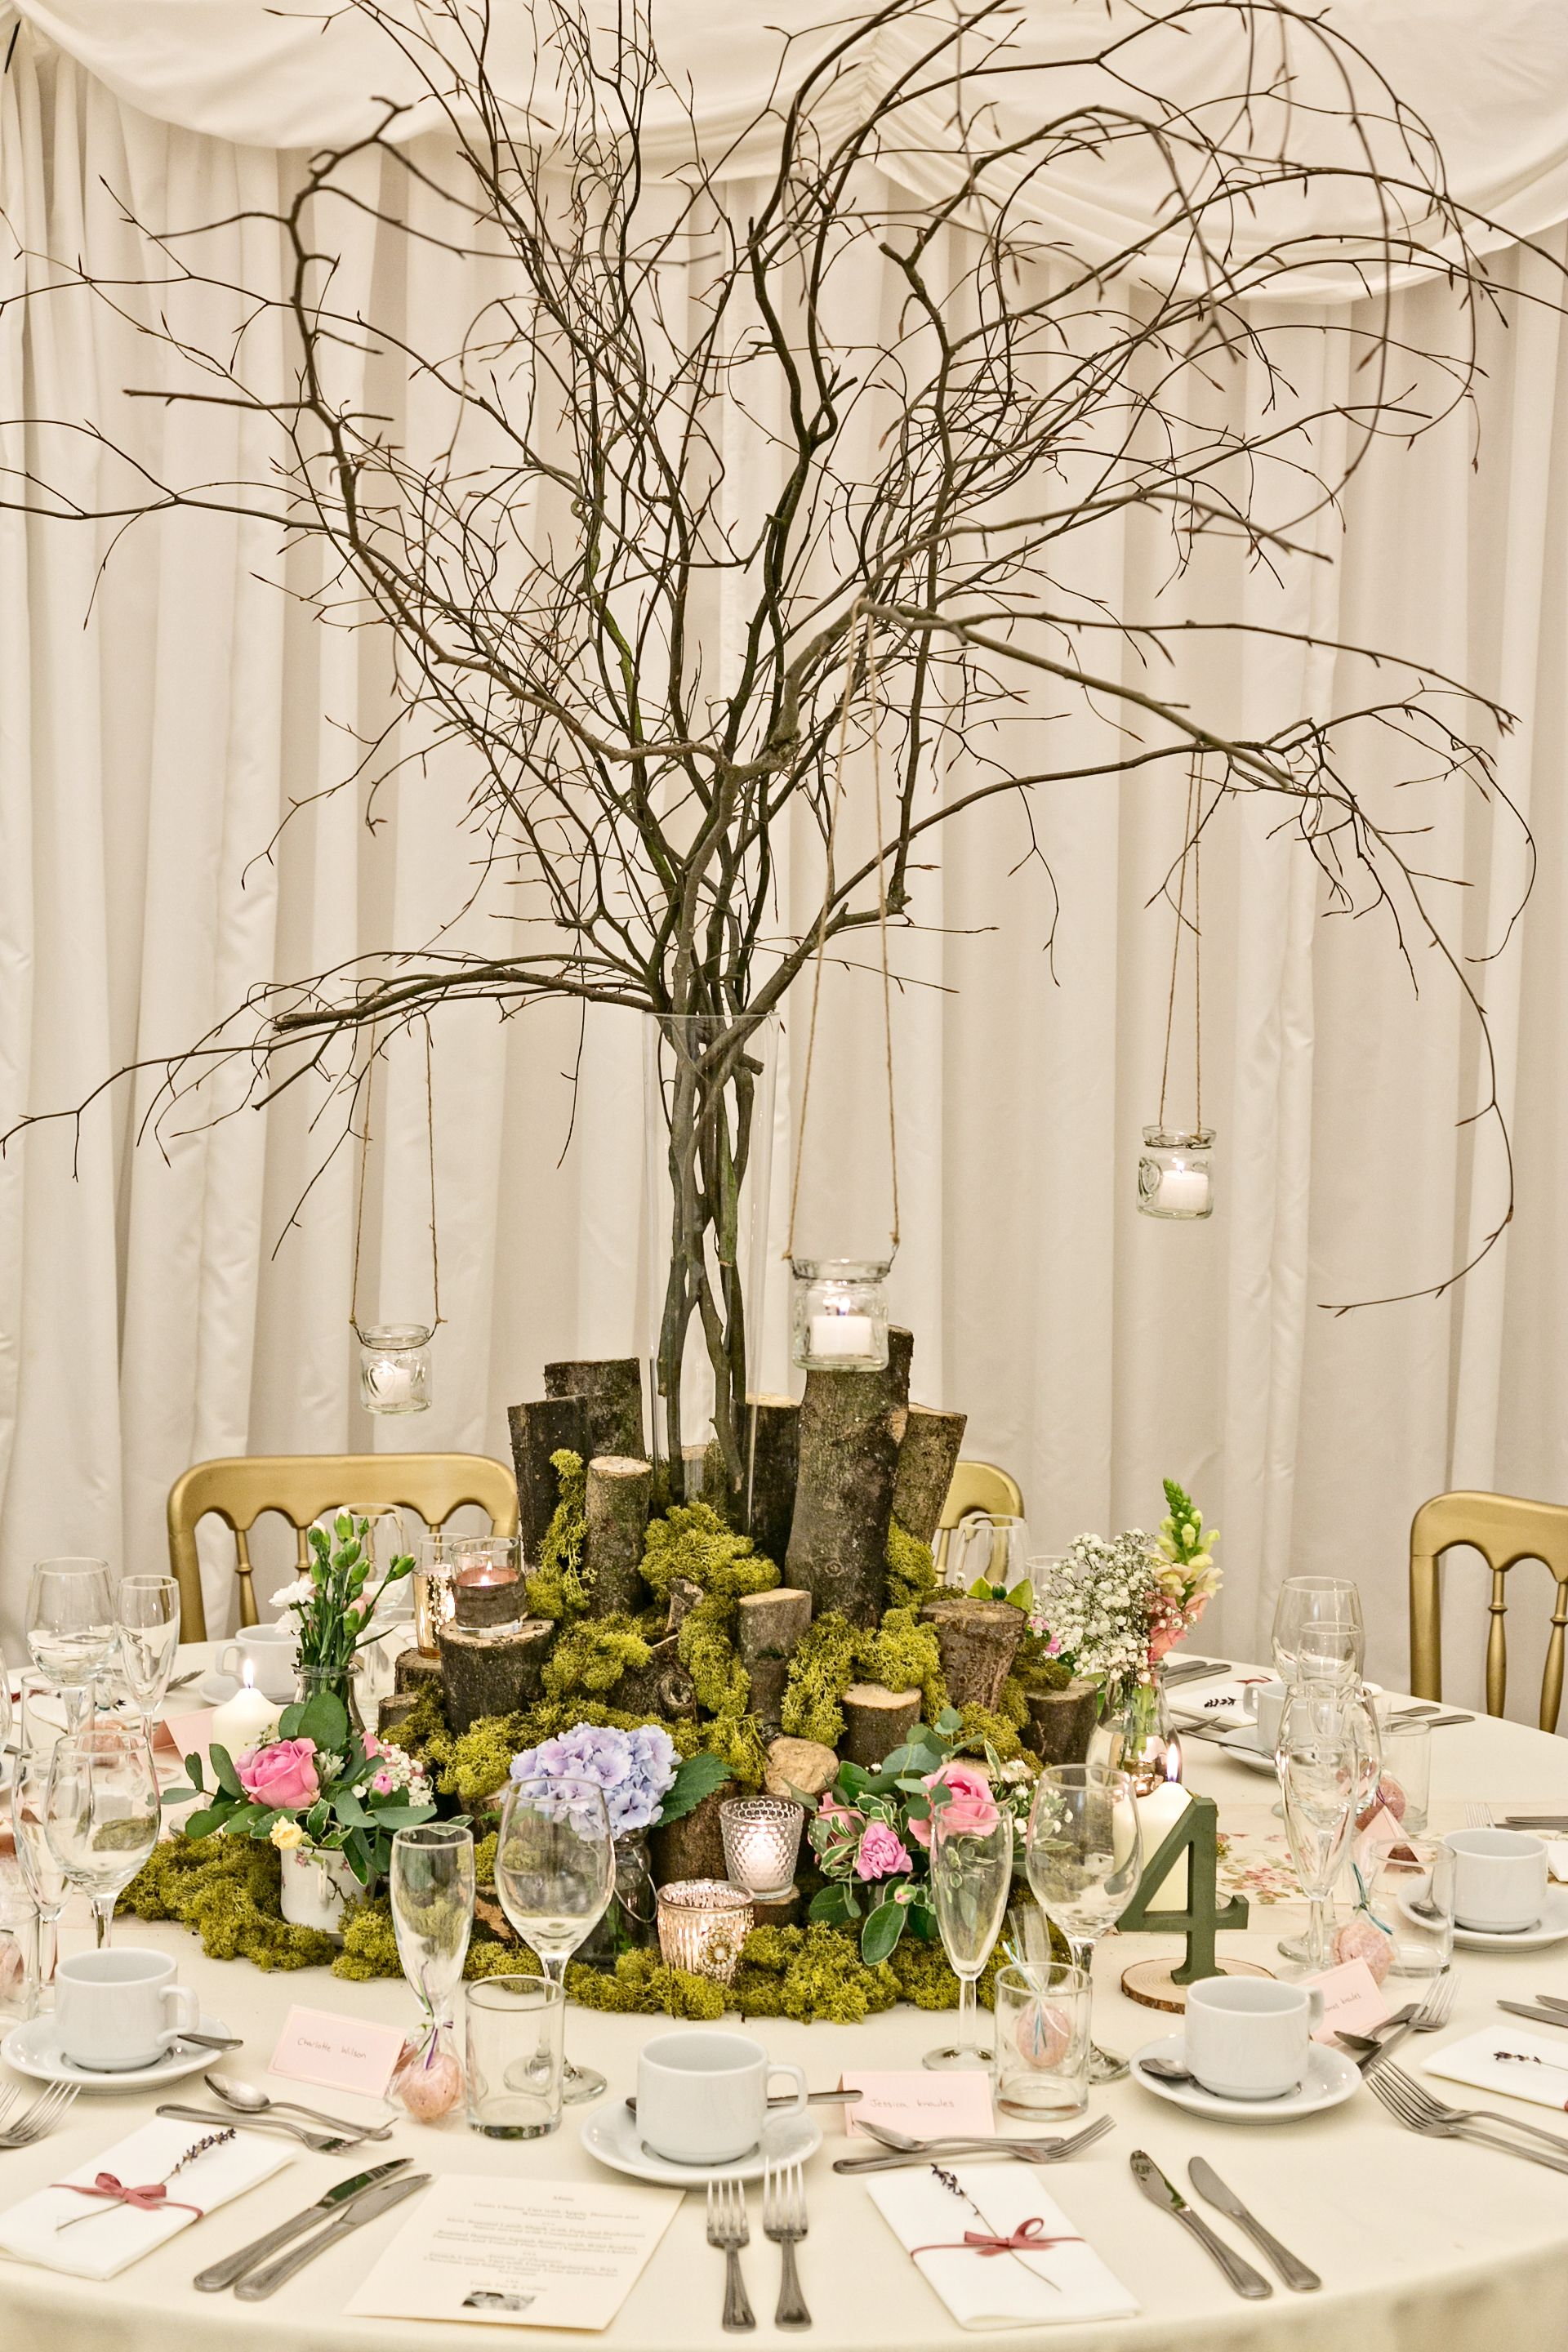 enchanted forest decorations.htm crow hill weddings  marsden www crowhillcottages co uk  crow hill weddings  marsden www